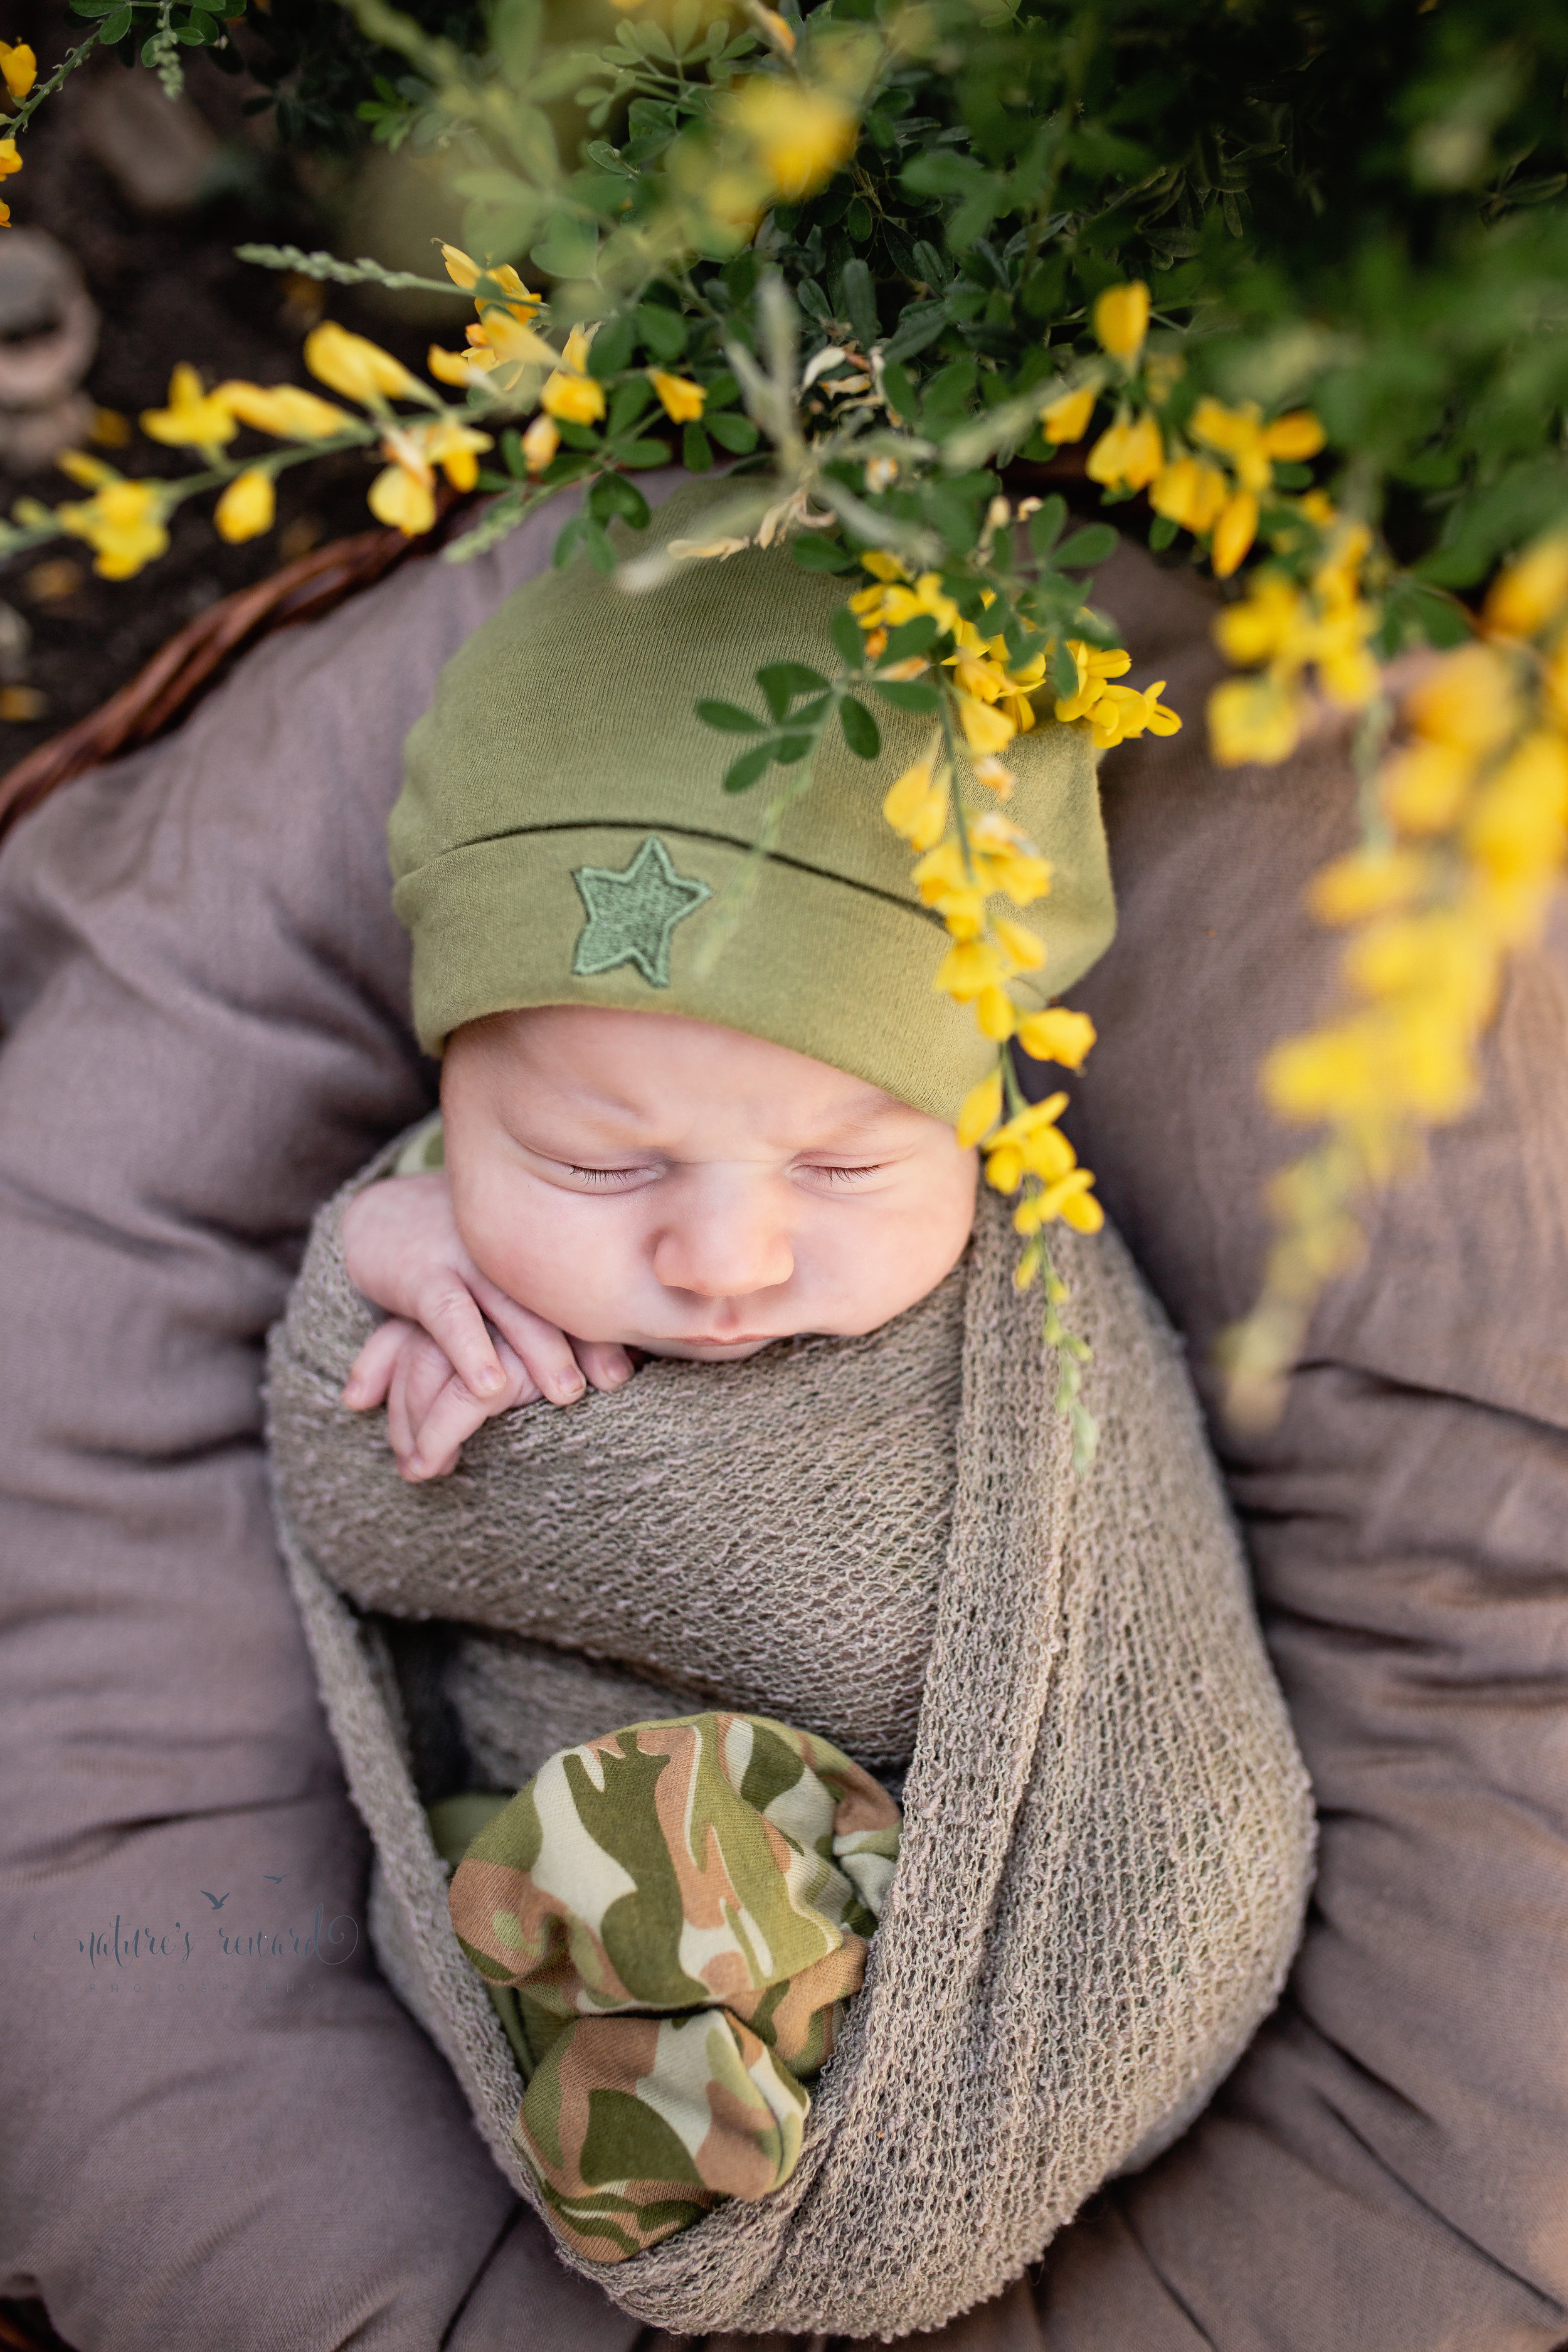 Baby Boy in a Garden Newborn Session wearing the camouflage booties and beanie his mother brought and snuggly wrapped under a yellow flowering plant in this portrait by Nature's Reward Photography